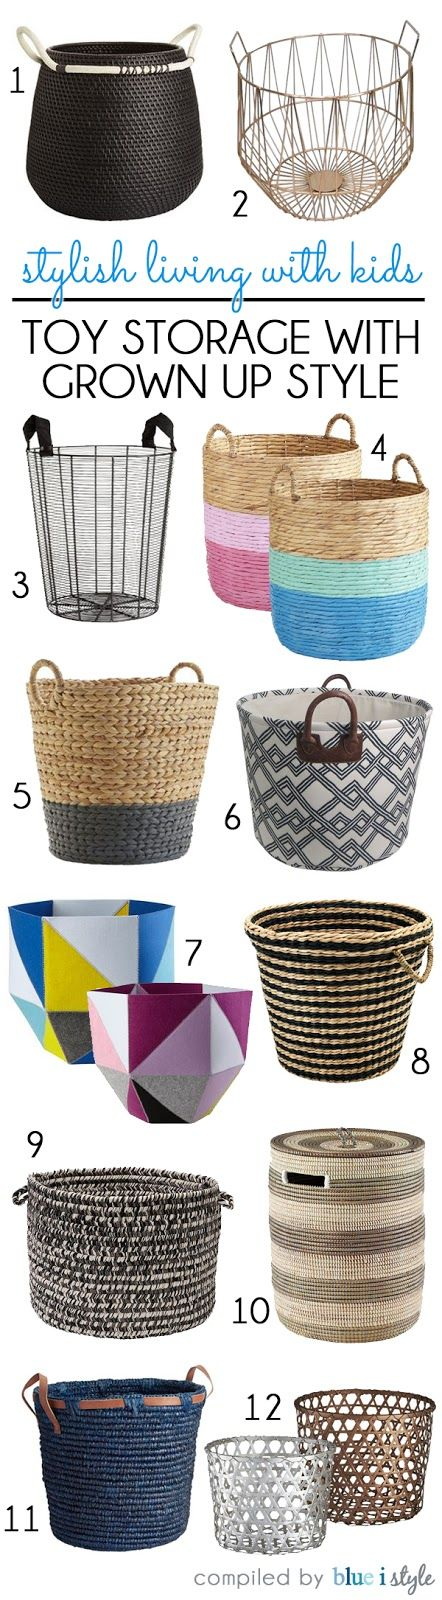 25 best ideas about storage baskets on pinterest for Hampers for kids rooms